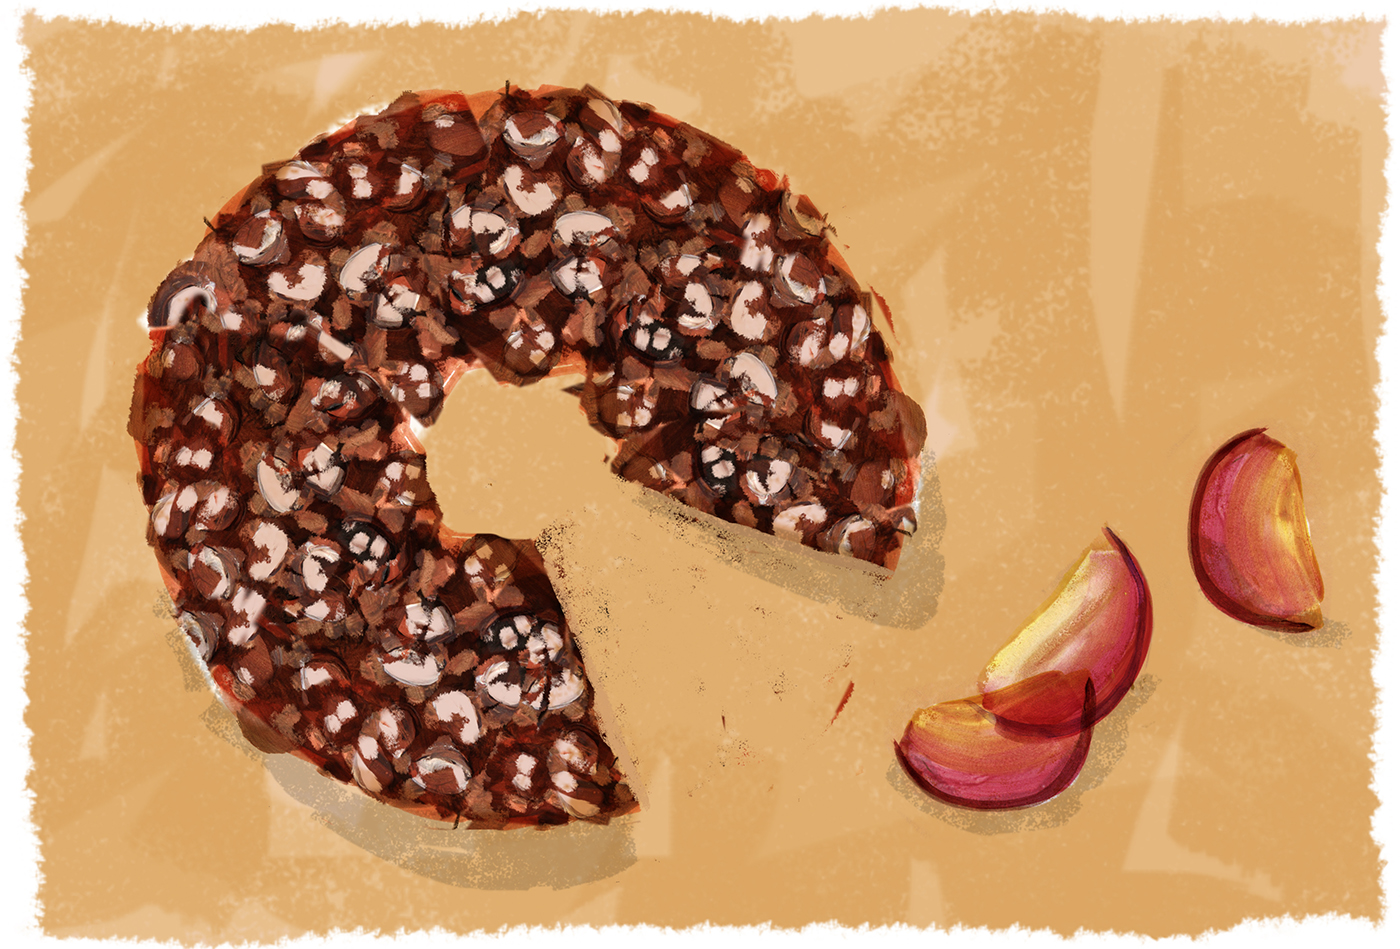 Plum Toffee Cake, Lauren Monaco Illustration